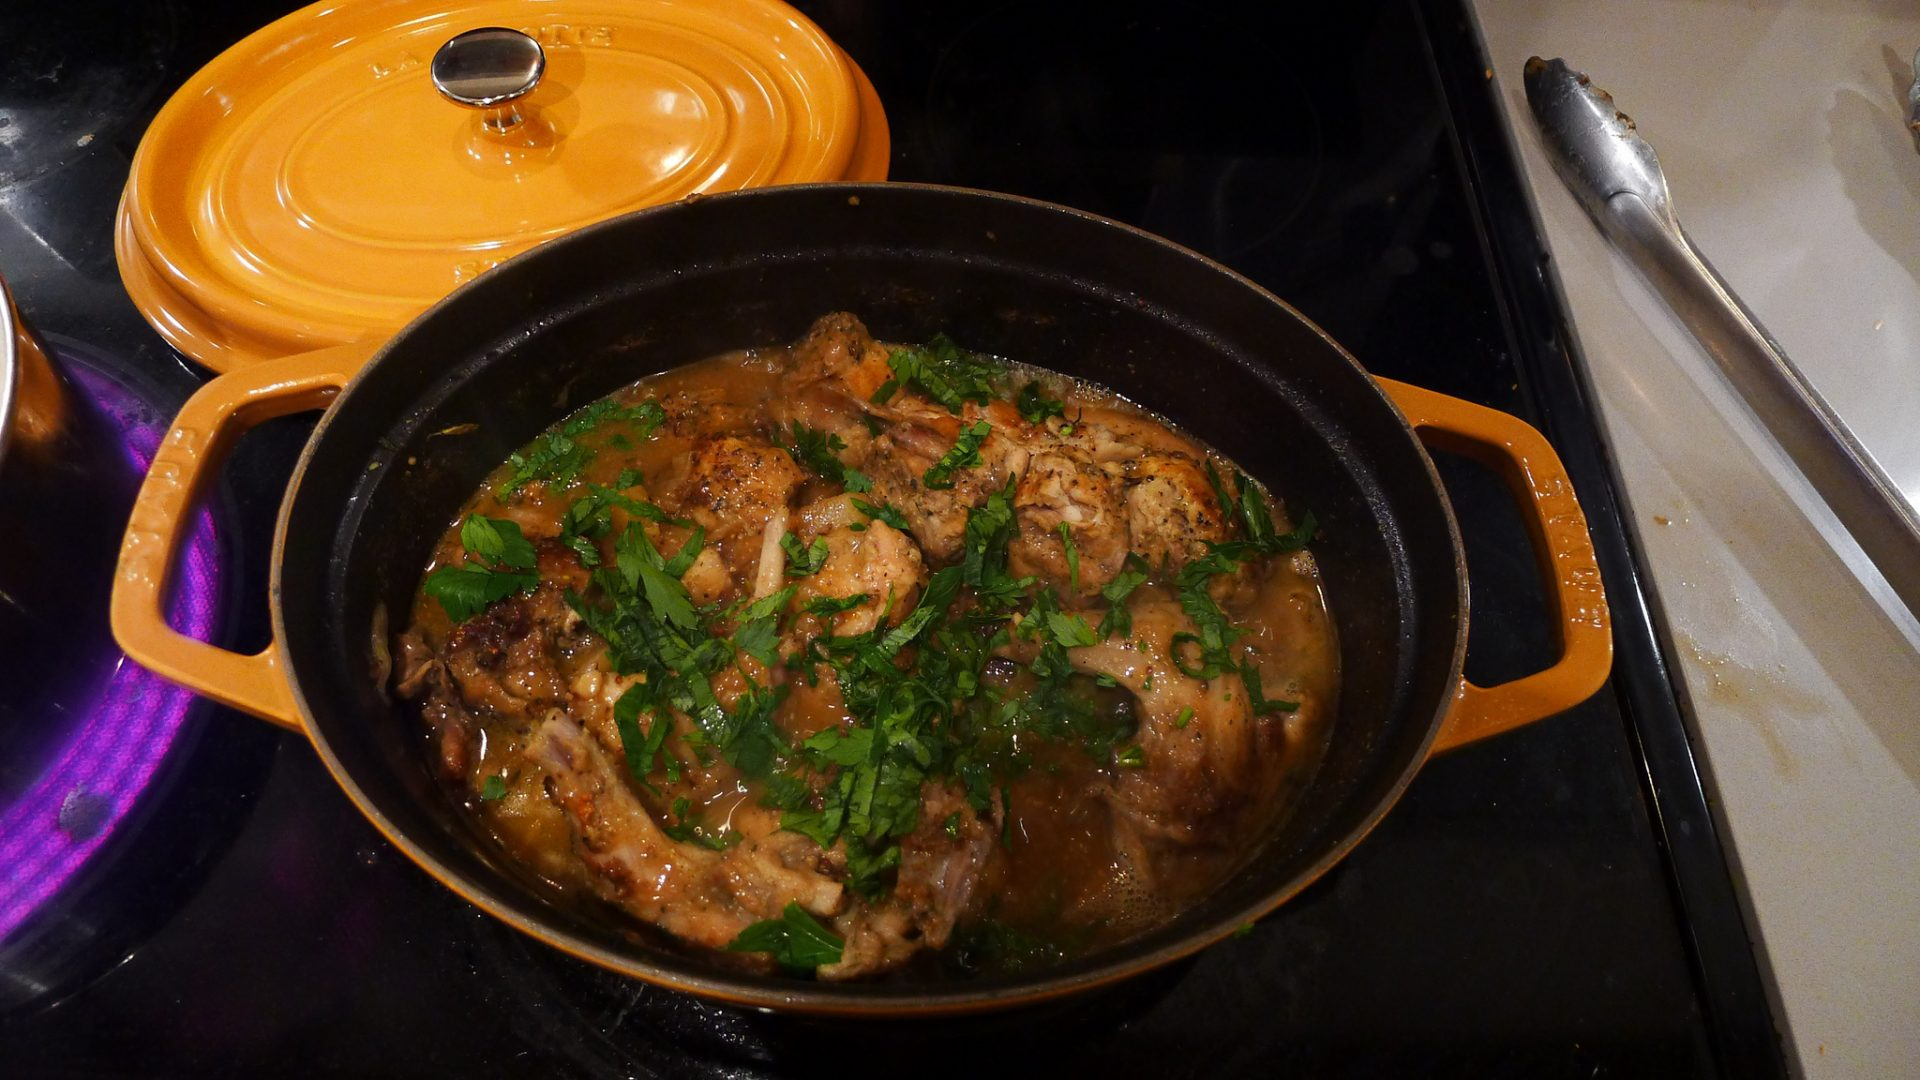 Causing a gastronomic revolution in the Drummond kitchen, here the cocotte provides a spot for some Rabbit Carbonade.